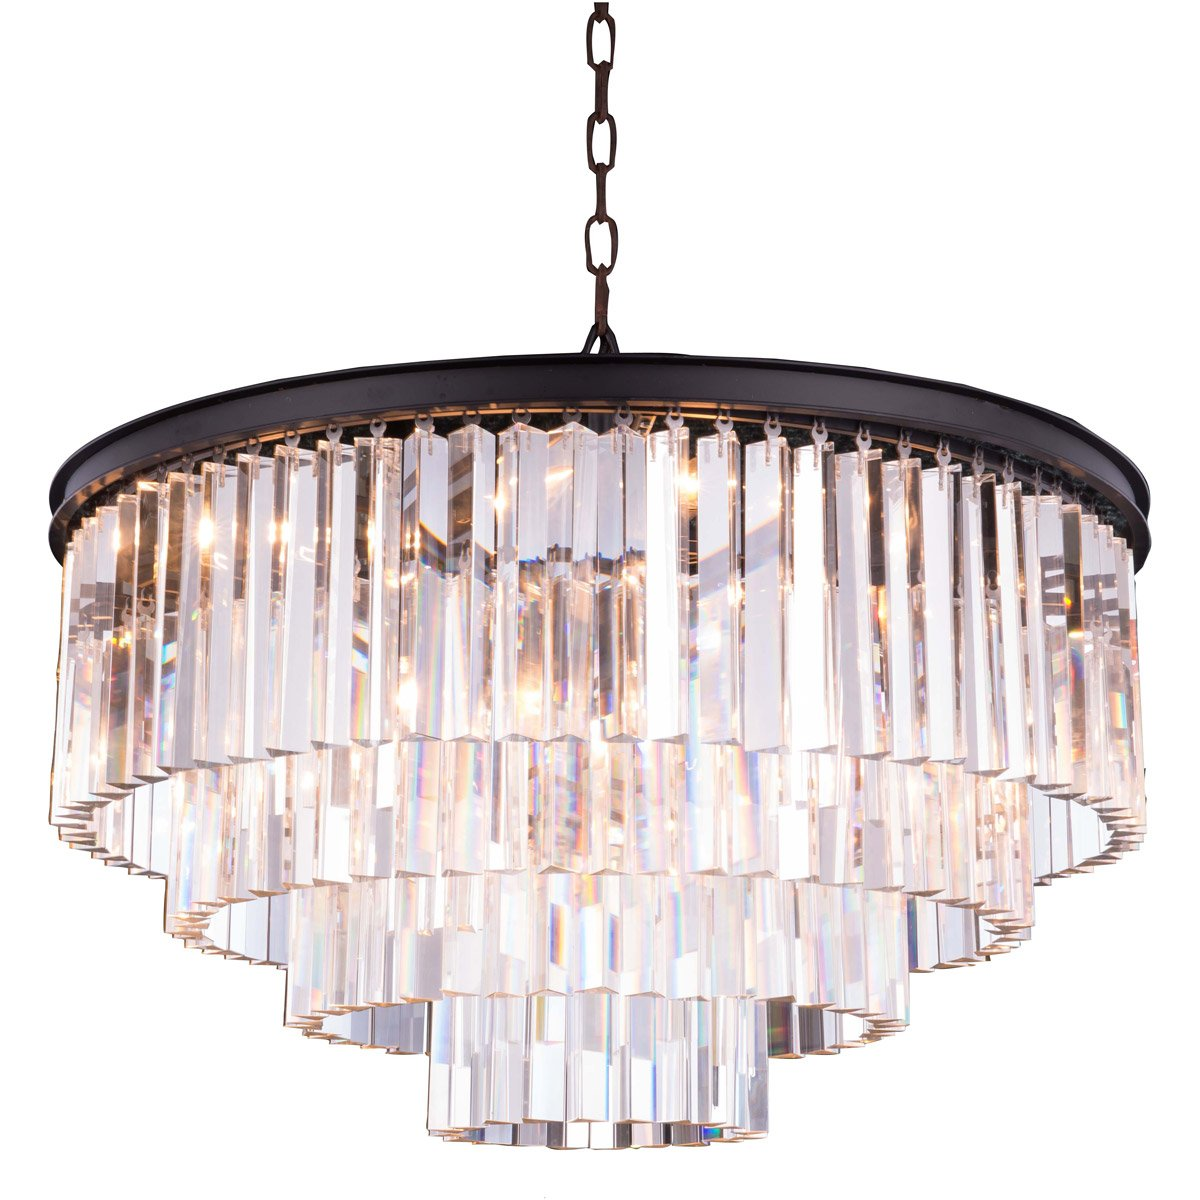 Sydney 32 Crystal Pendant Chandelier With 8 Lights - Matte Black Finish And Clear Crystal Chandelier